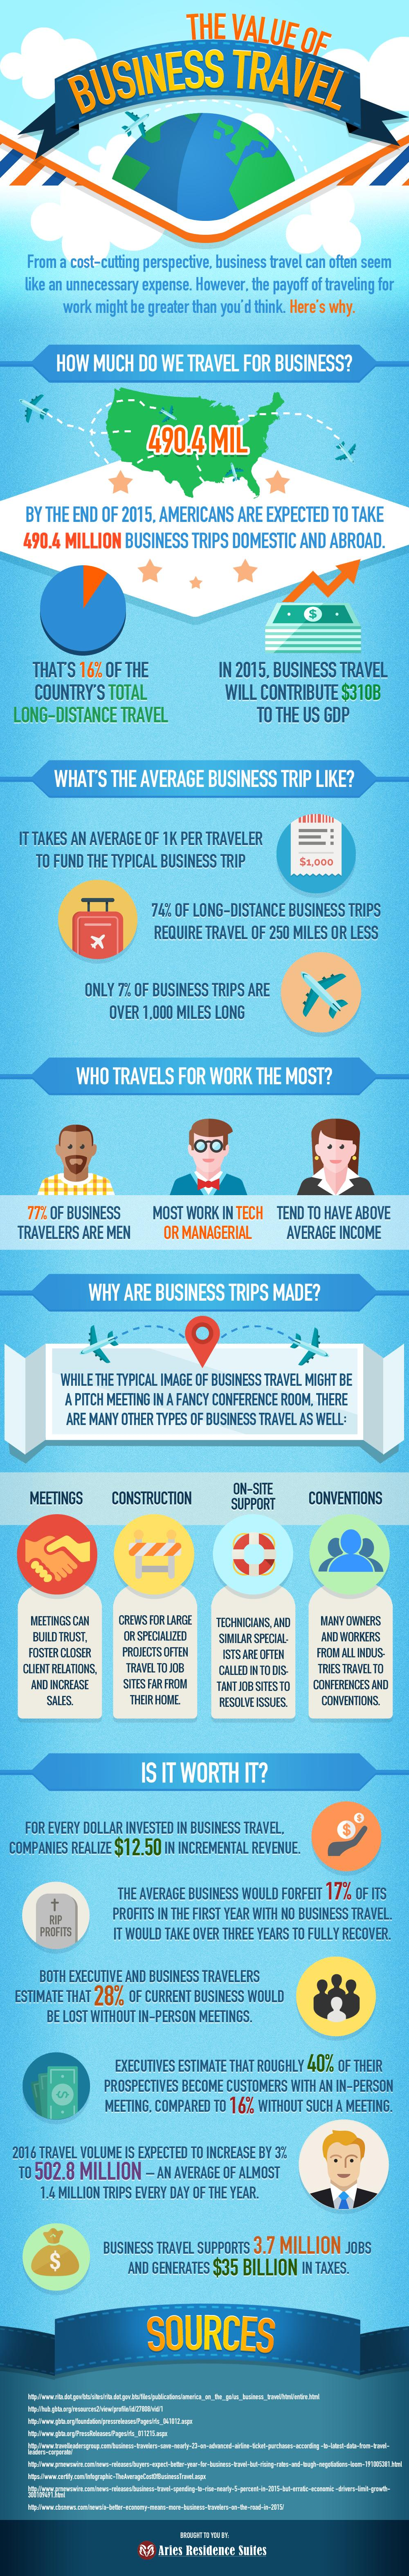 Value Of Business Travel